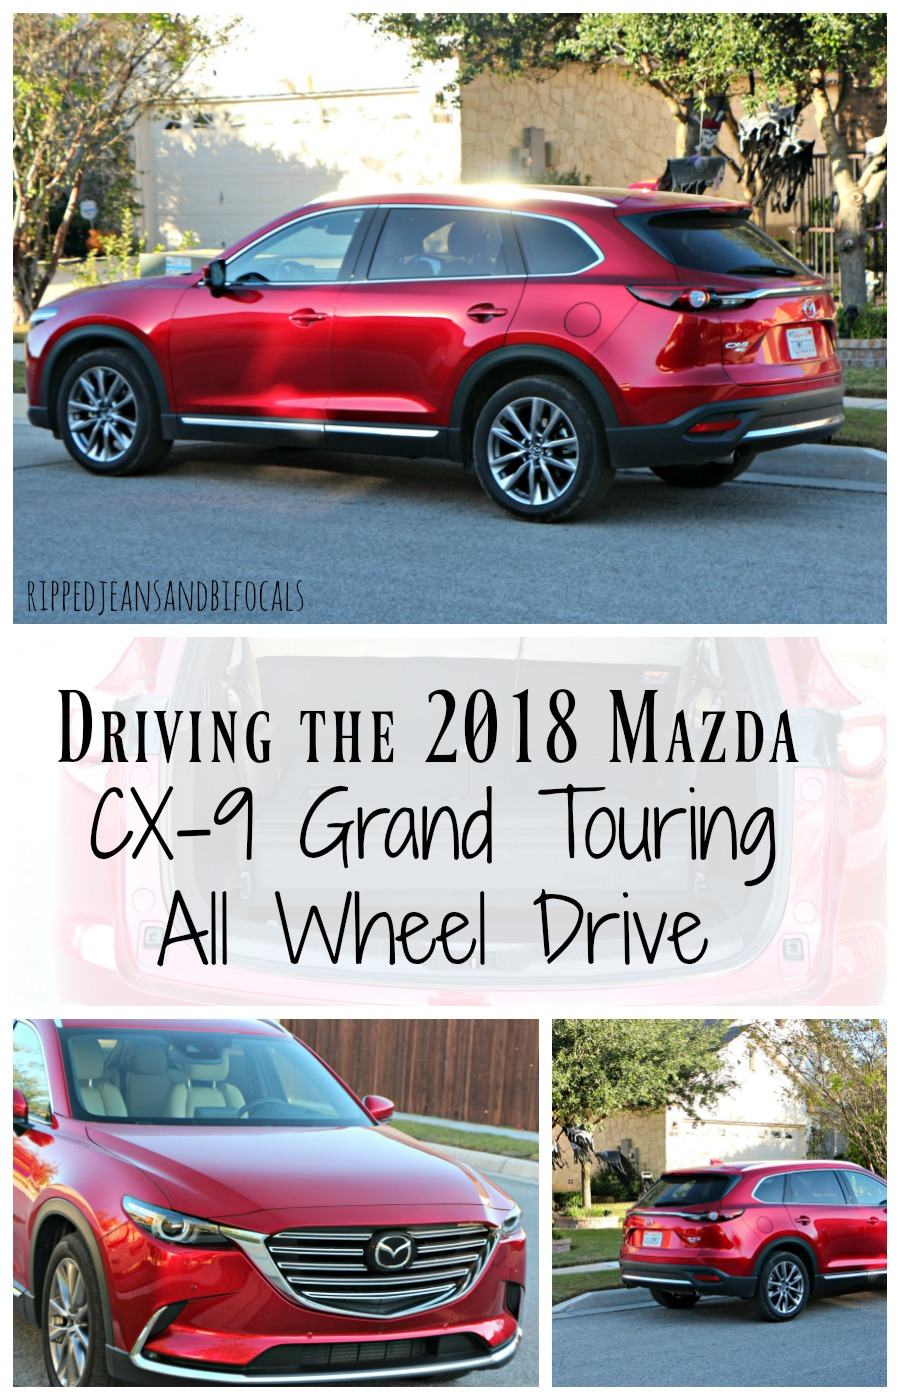 mazda cx 9 all wheel drive. Black Bedroom Furniture Sets. Home Design Ideas